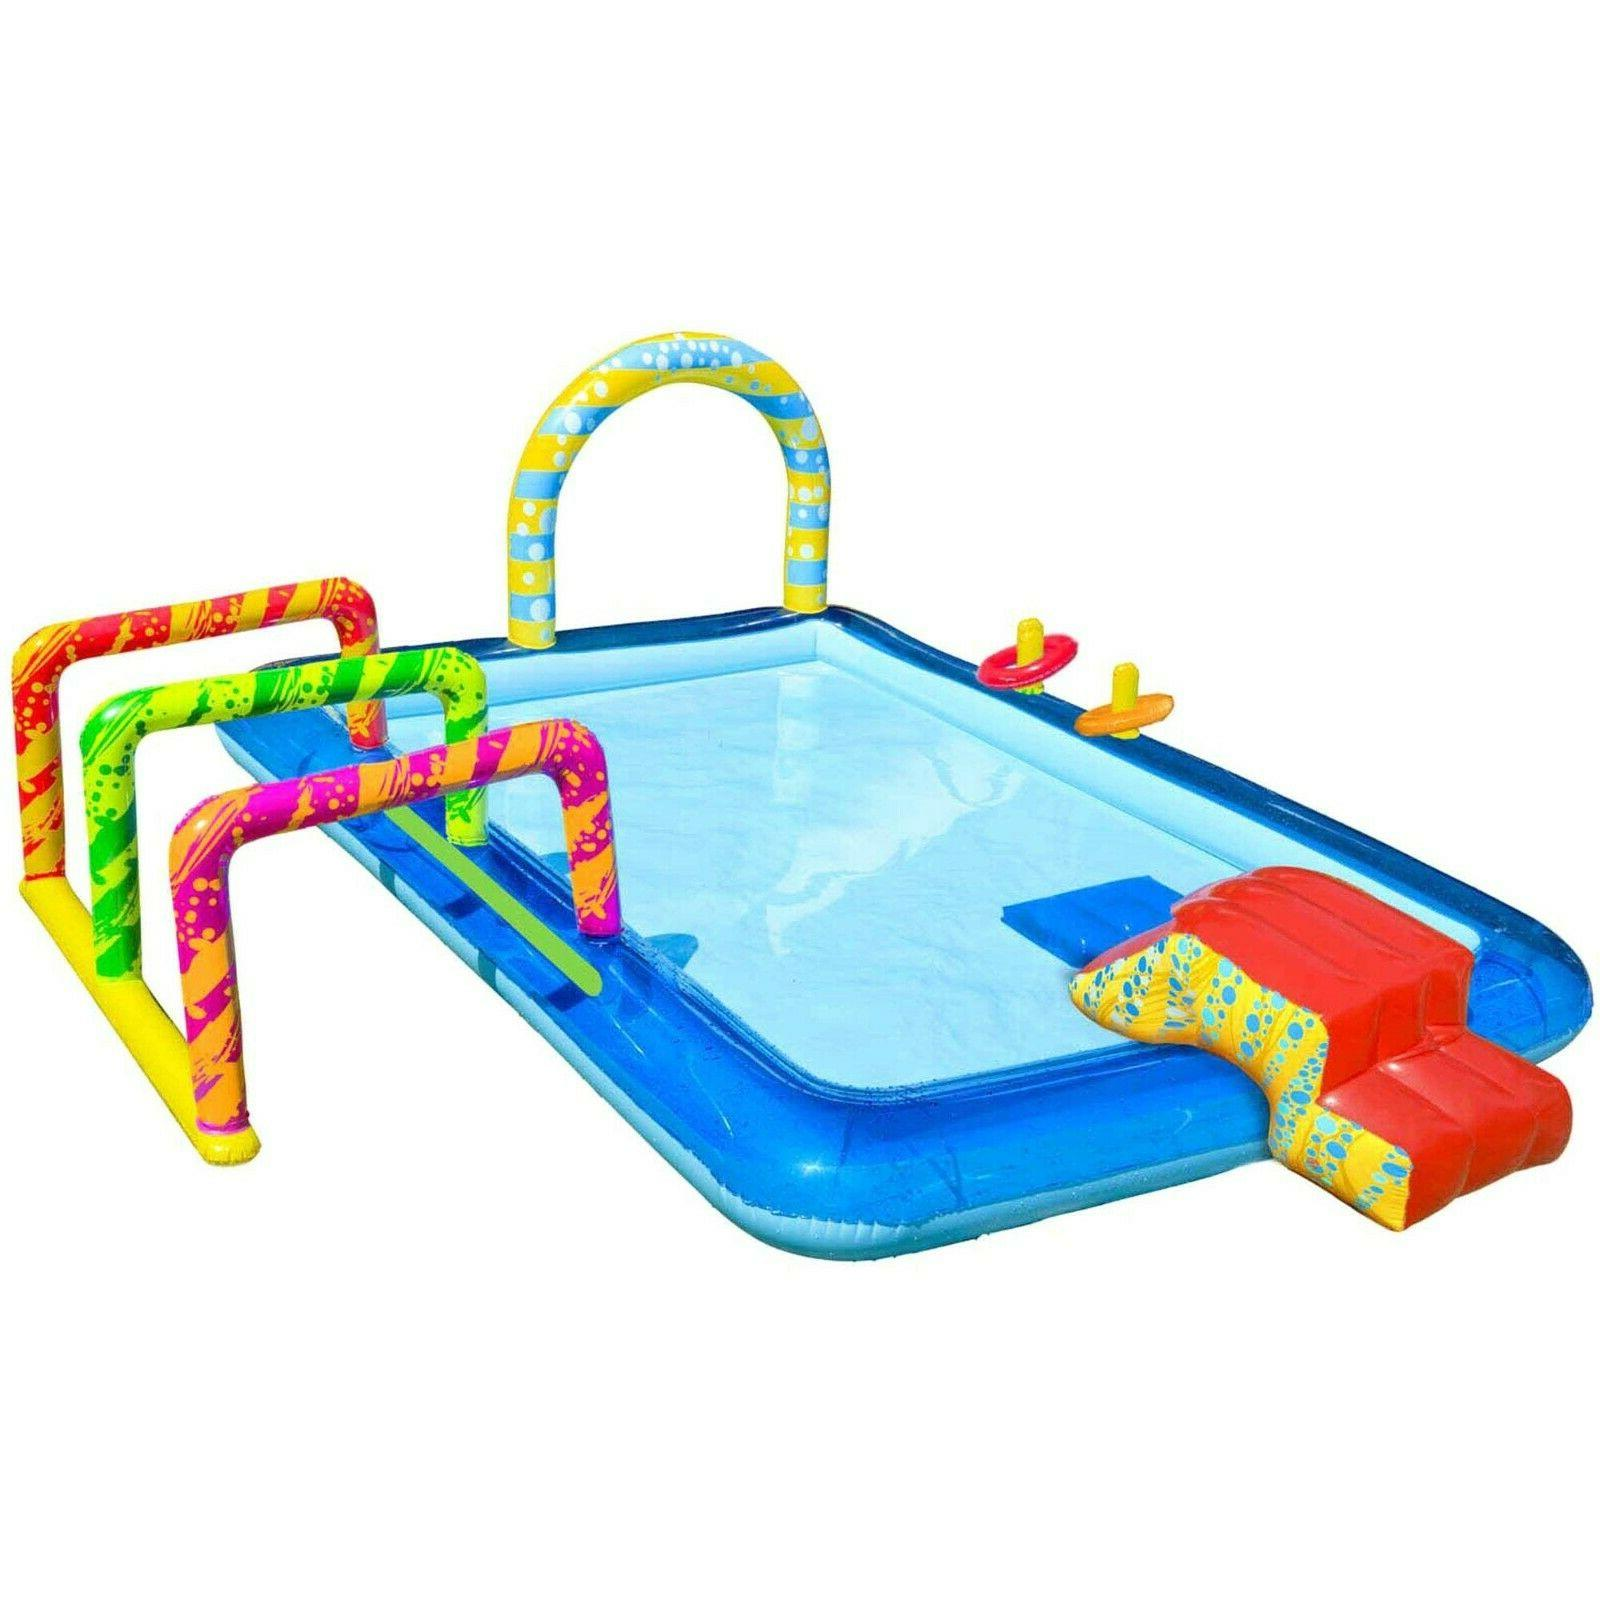 Banzai Obstacle Activity Pool